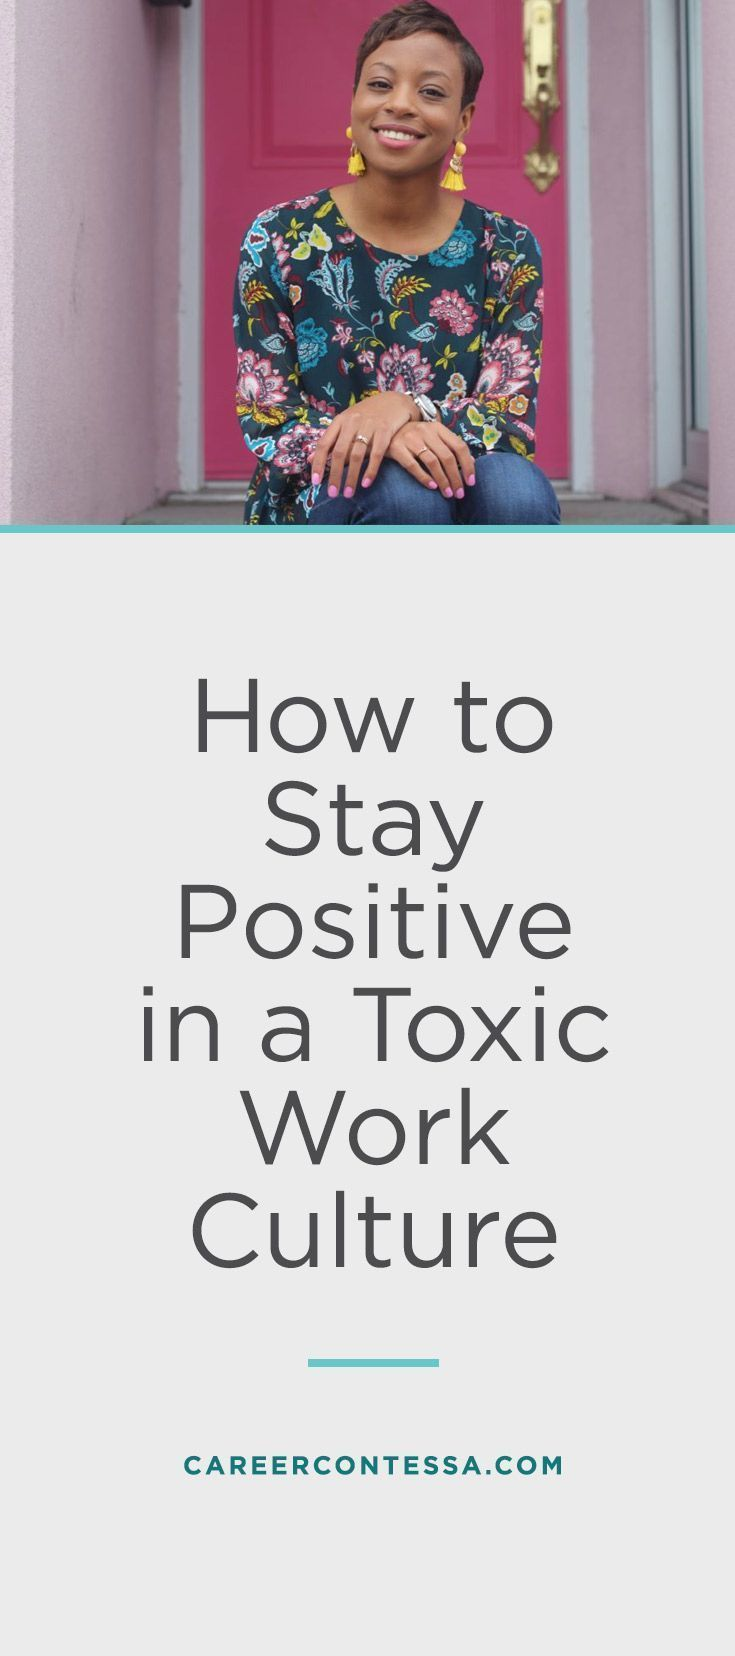 We tend to assume that the hardest part of the job is doing the position itself. But then one morning, you wake up dreading going to work because of your negative coworkers and its toxic company culture. And you ask yourself, can I change the environment of your workplace for the better? Or is it just a lost cause? Let's find out how to stay positive in a negative work place. | CareerContessa.com